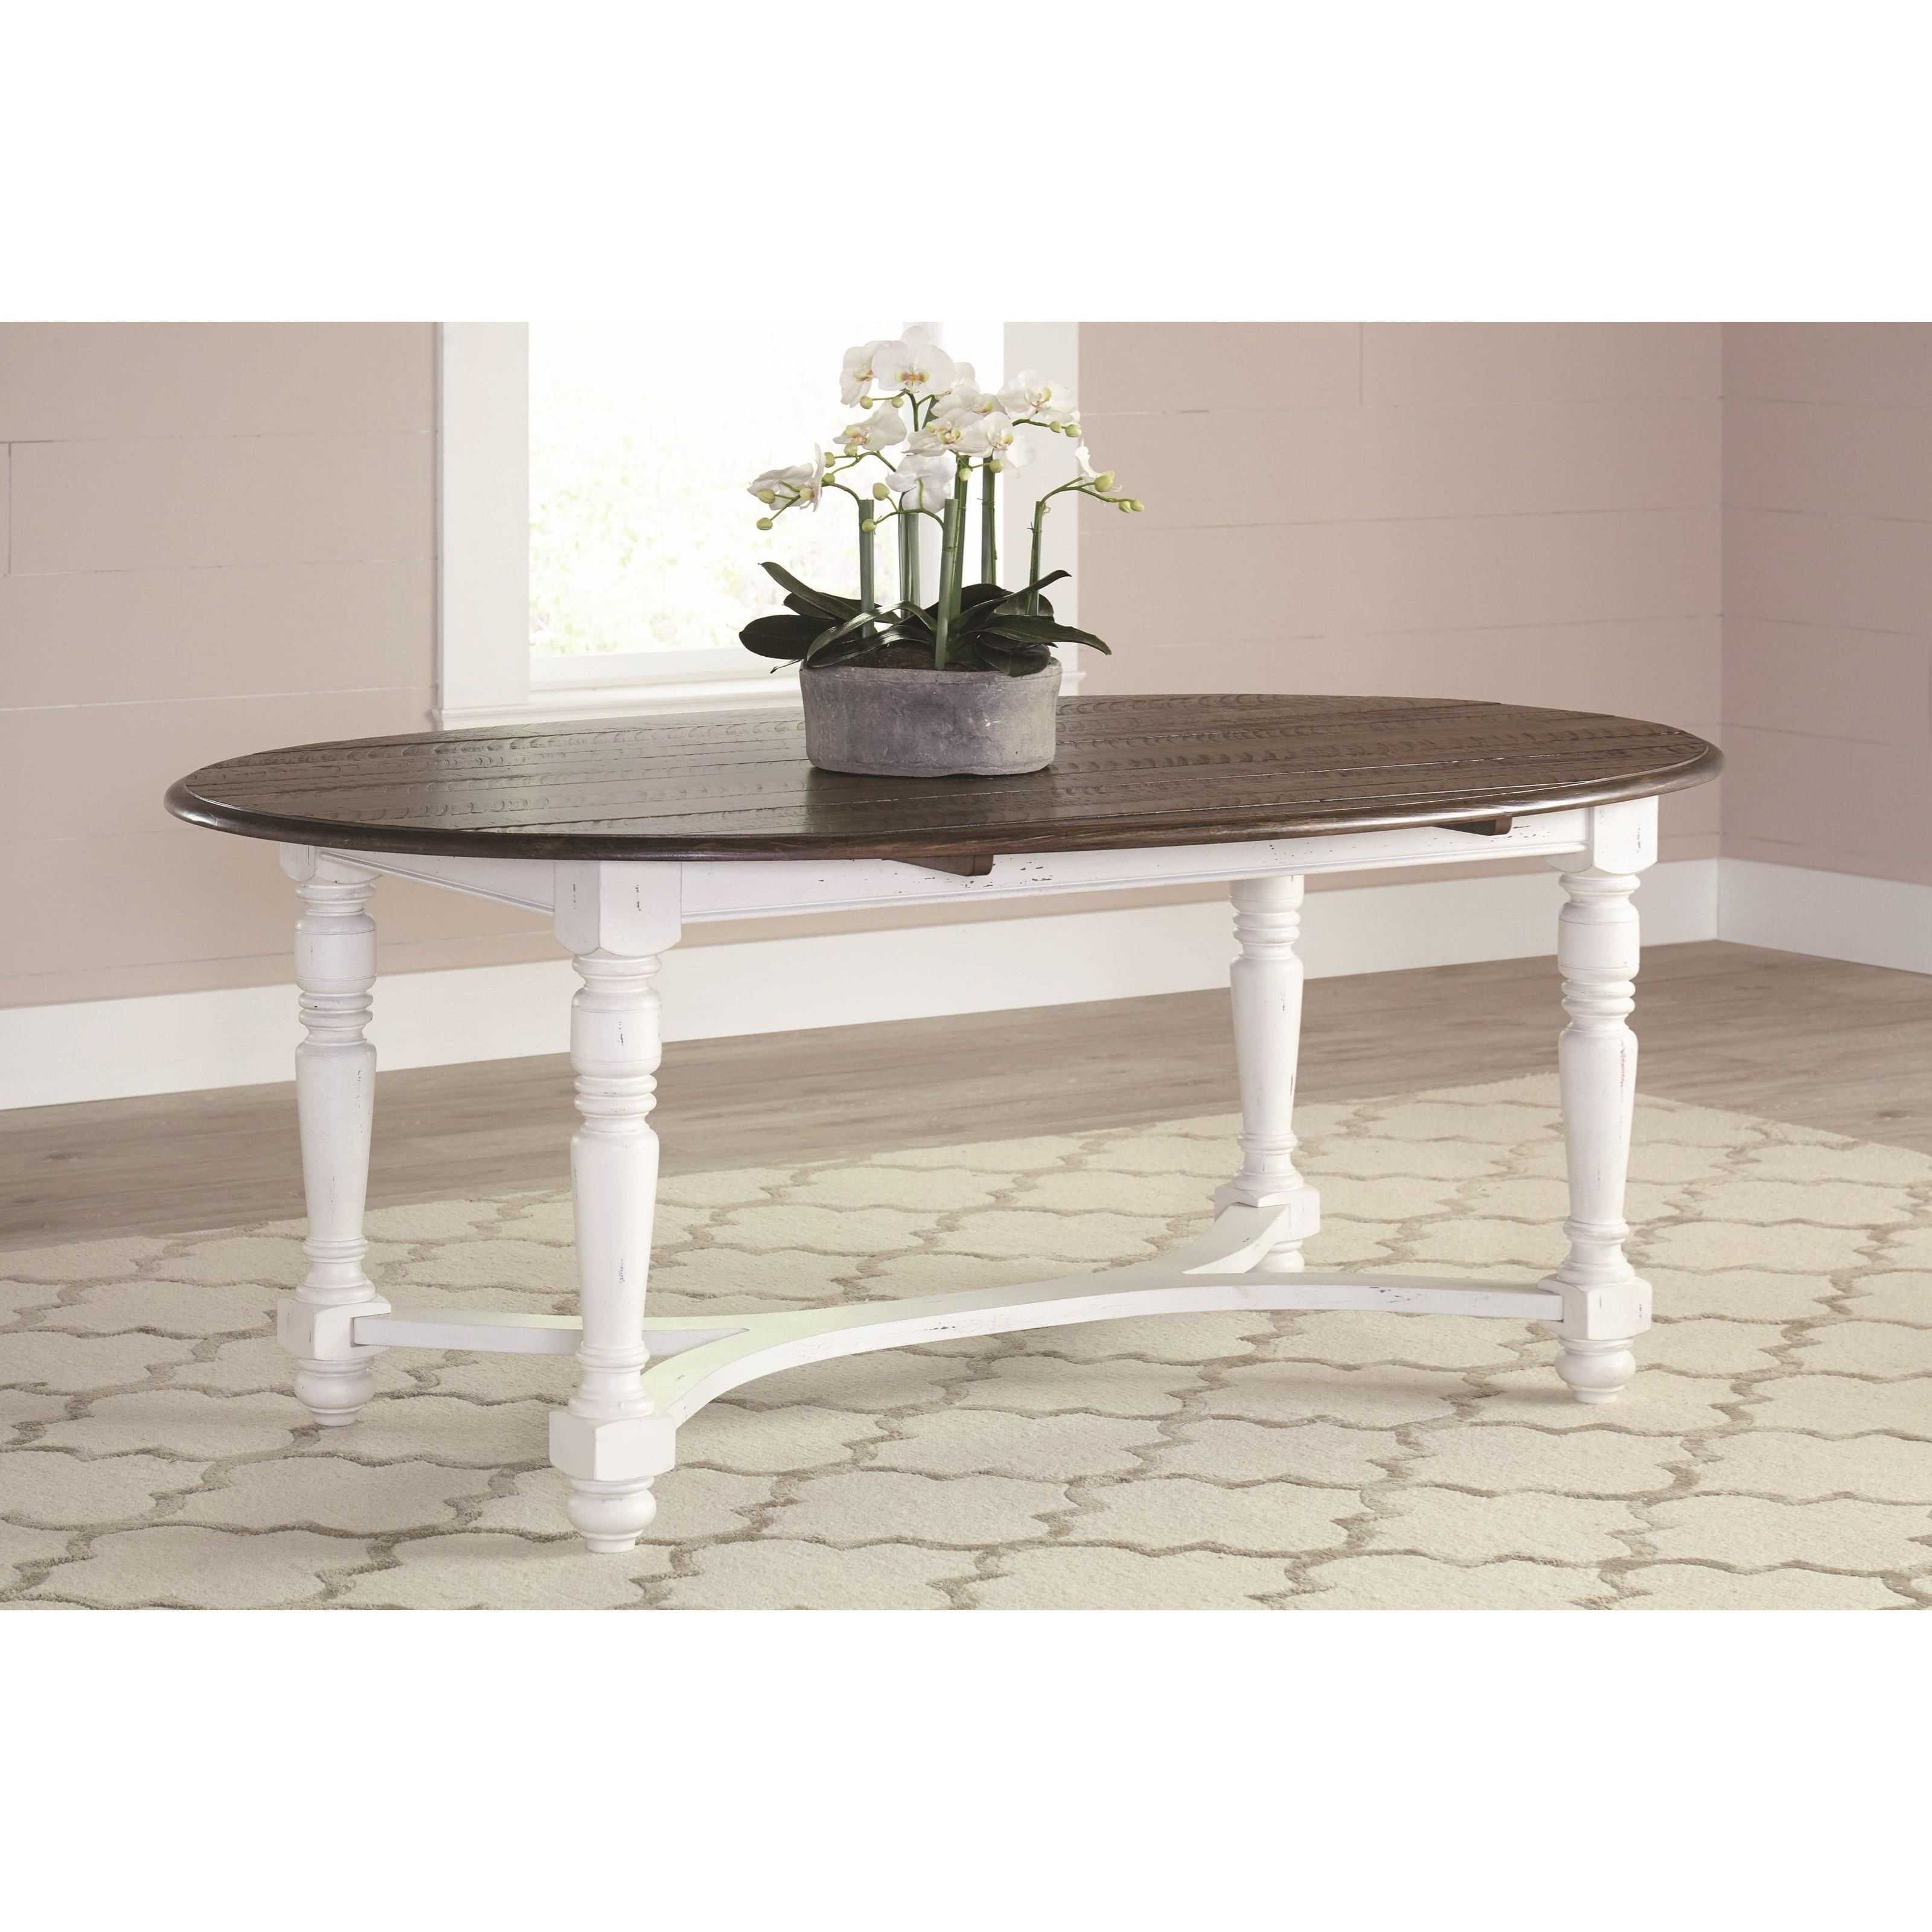 English Row - White Oval Dining Table with Turned Legs ...